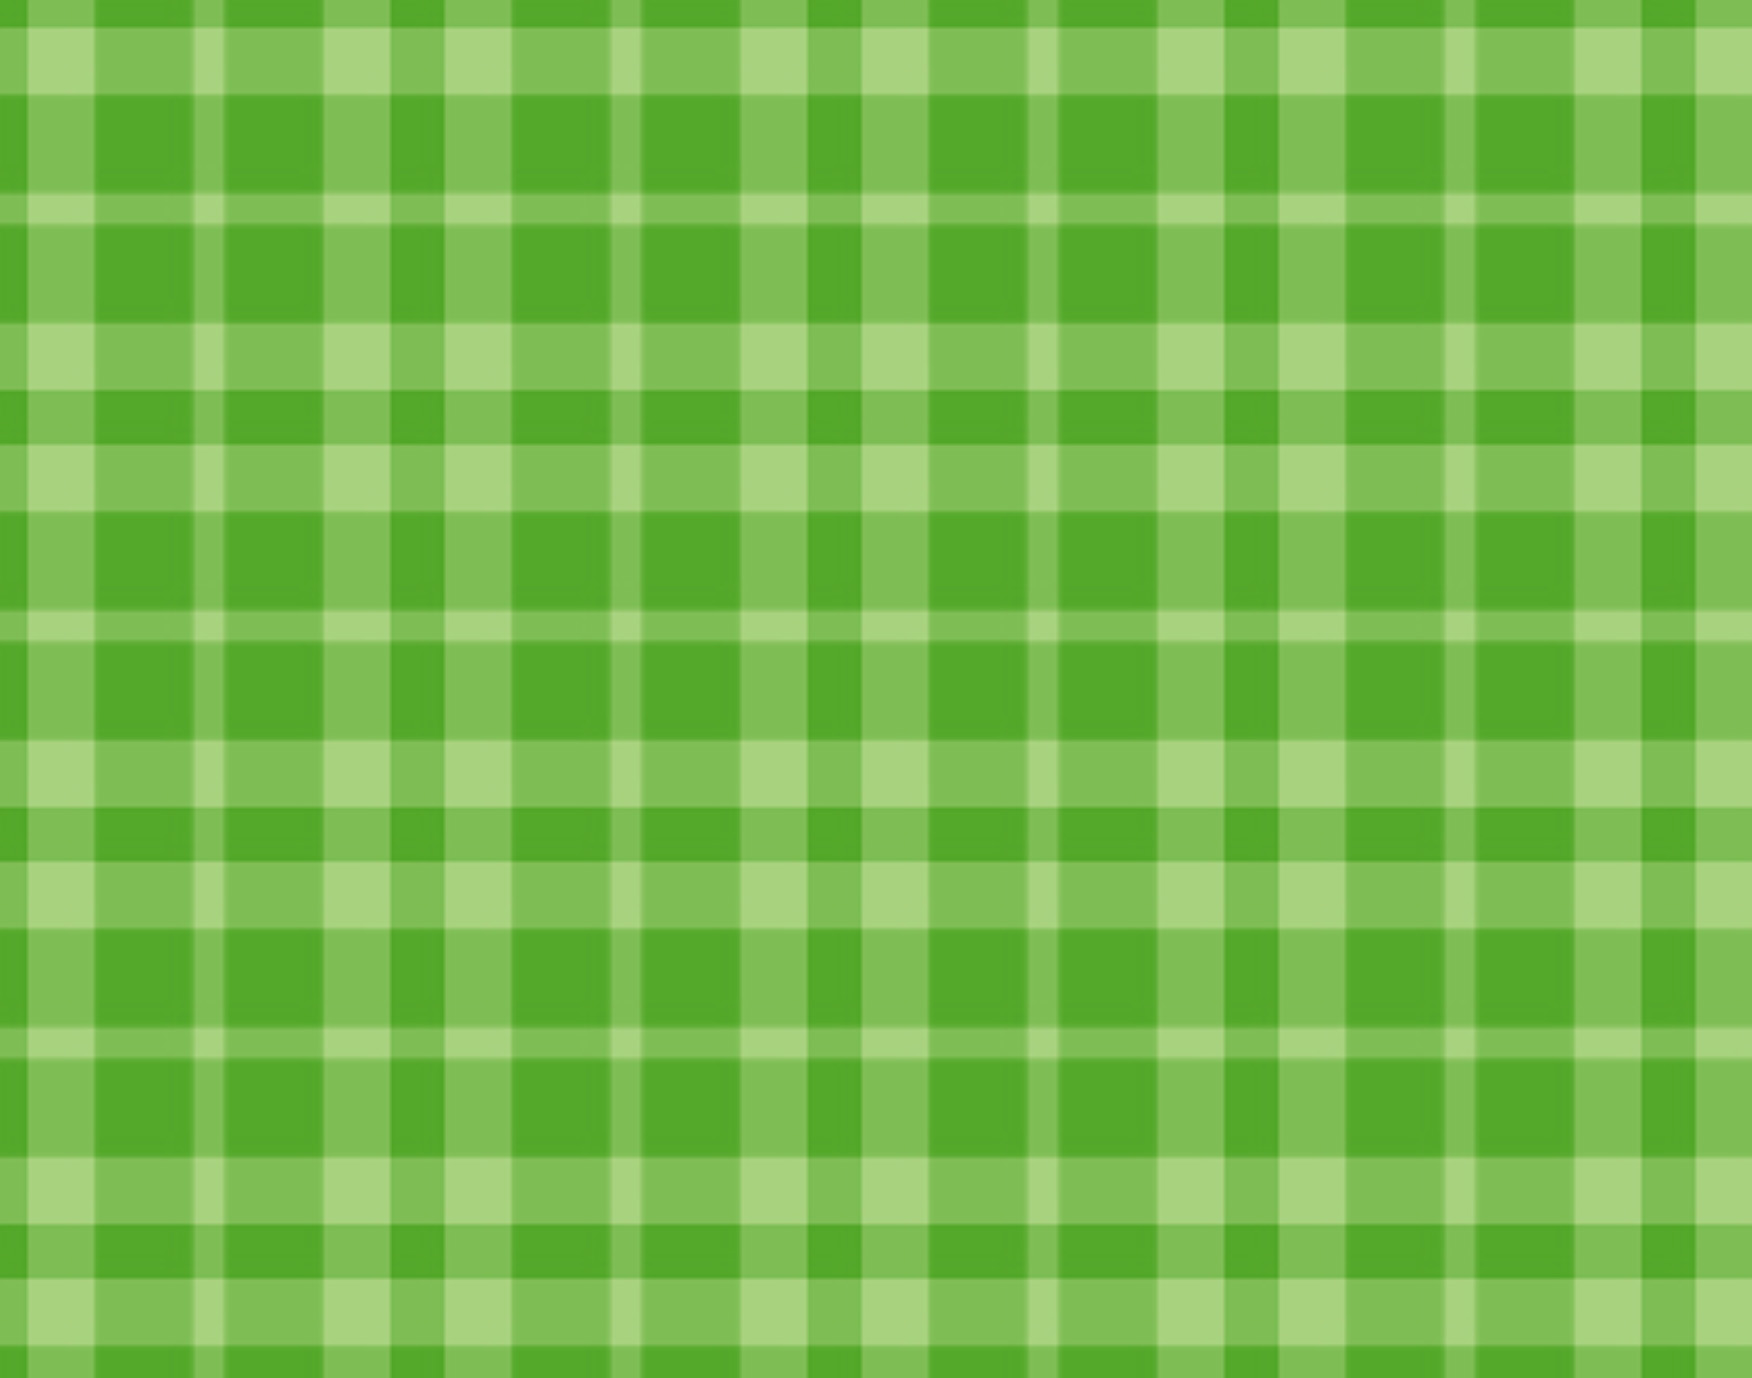 Plaid clipart light green Bing background Patterns Images Background